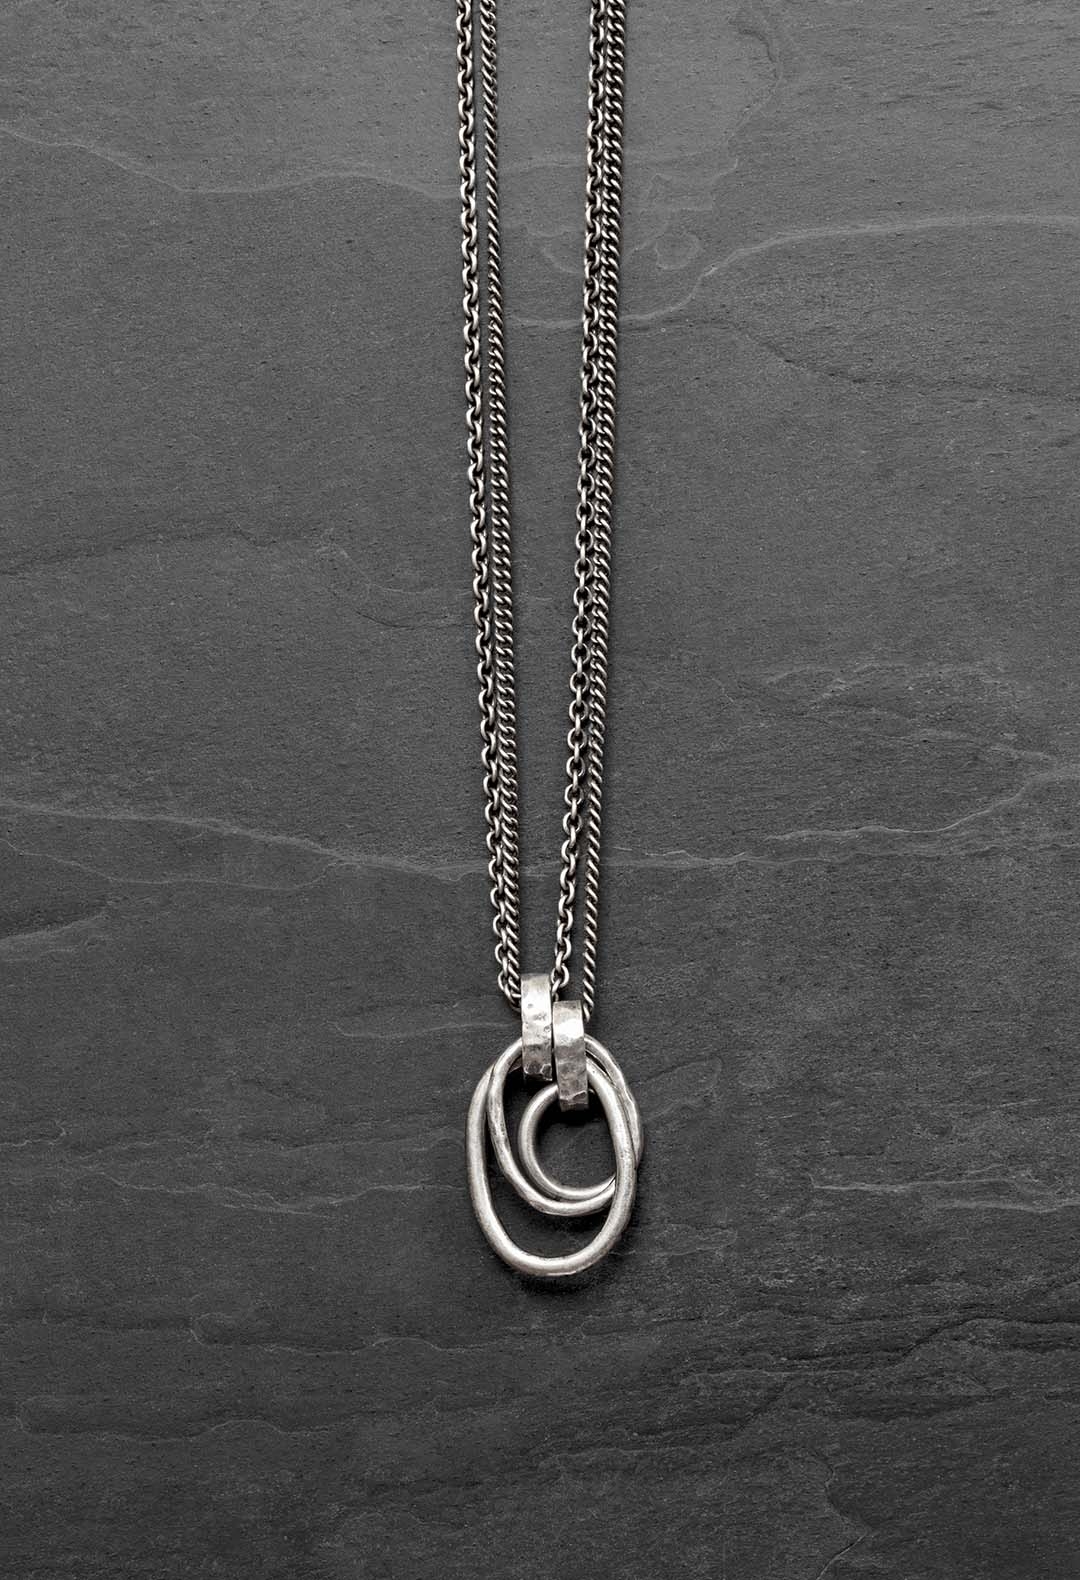 Ring loop necklace